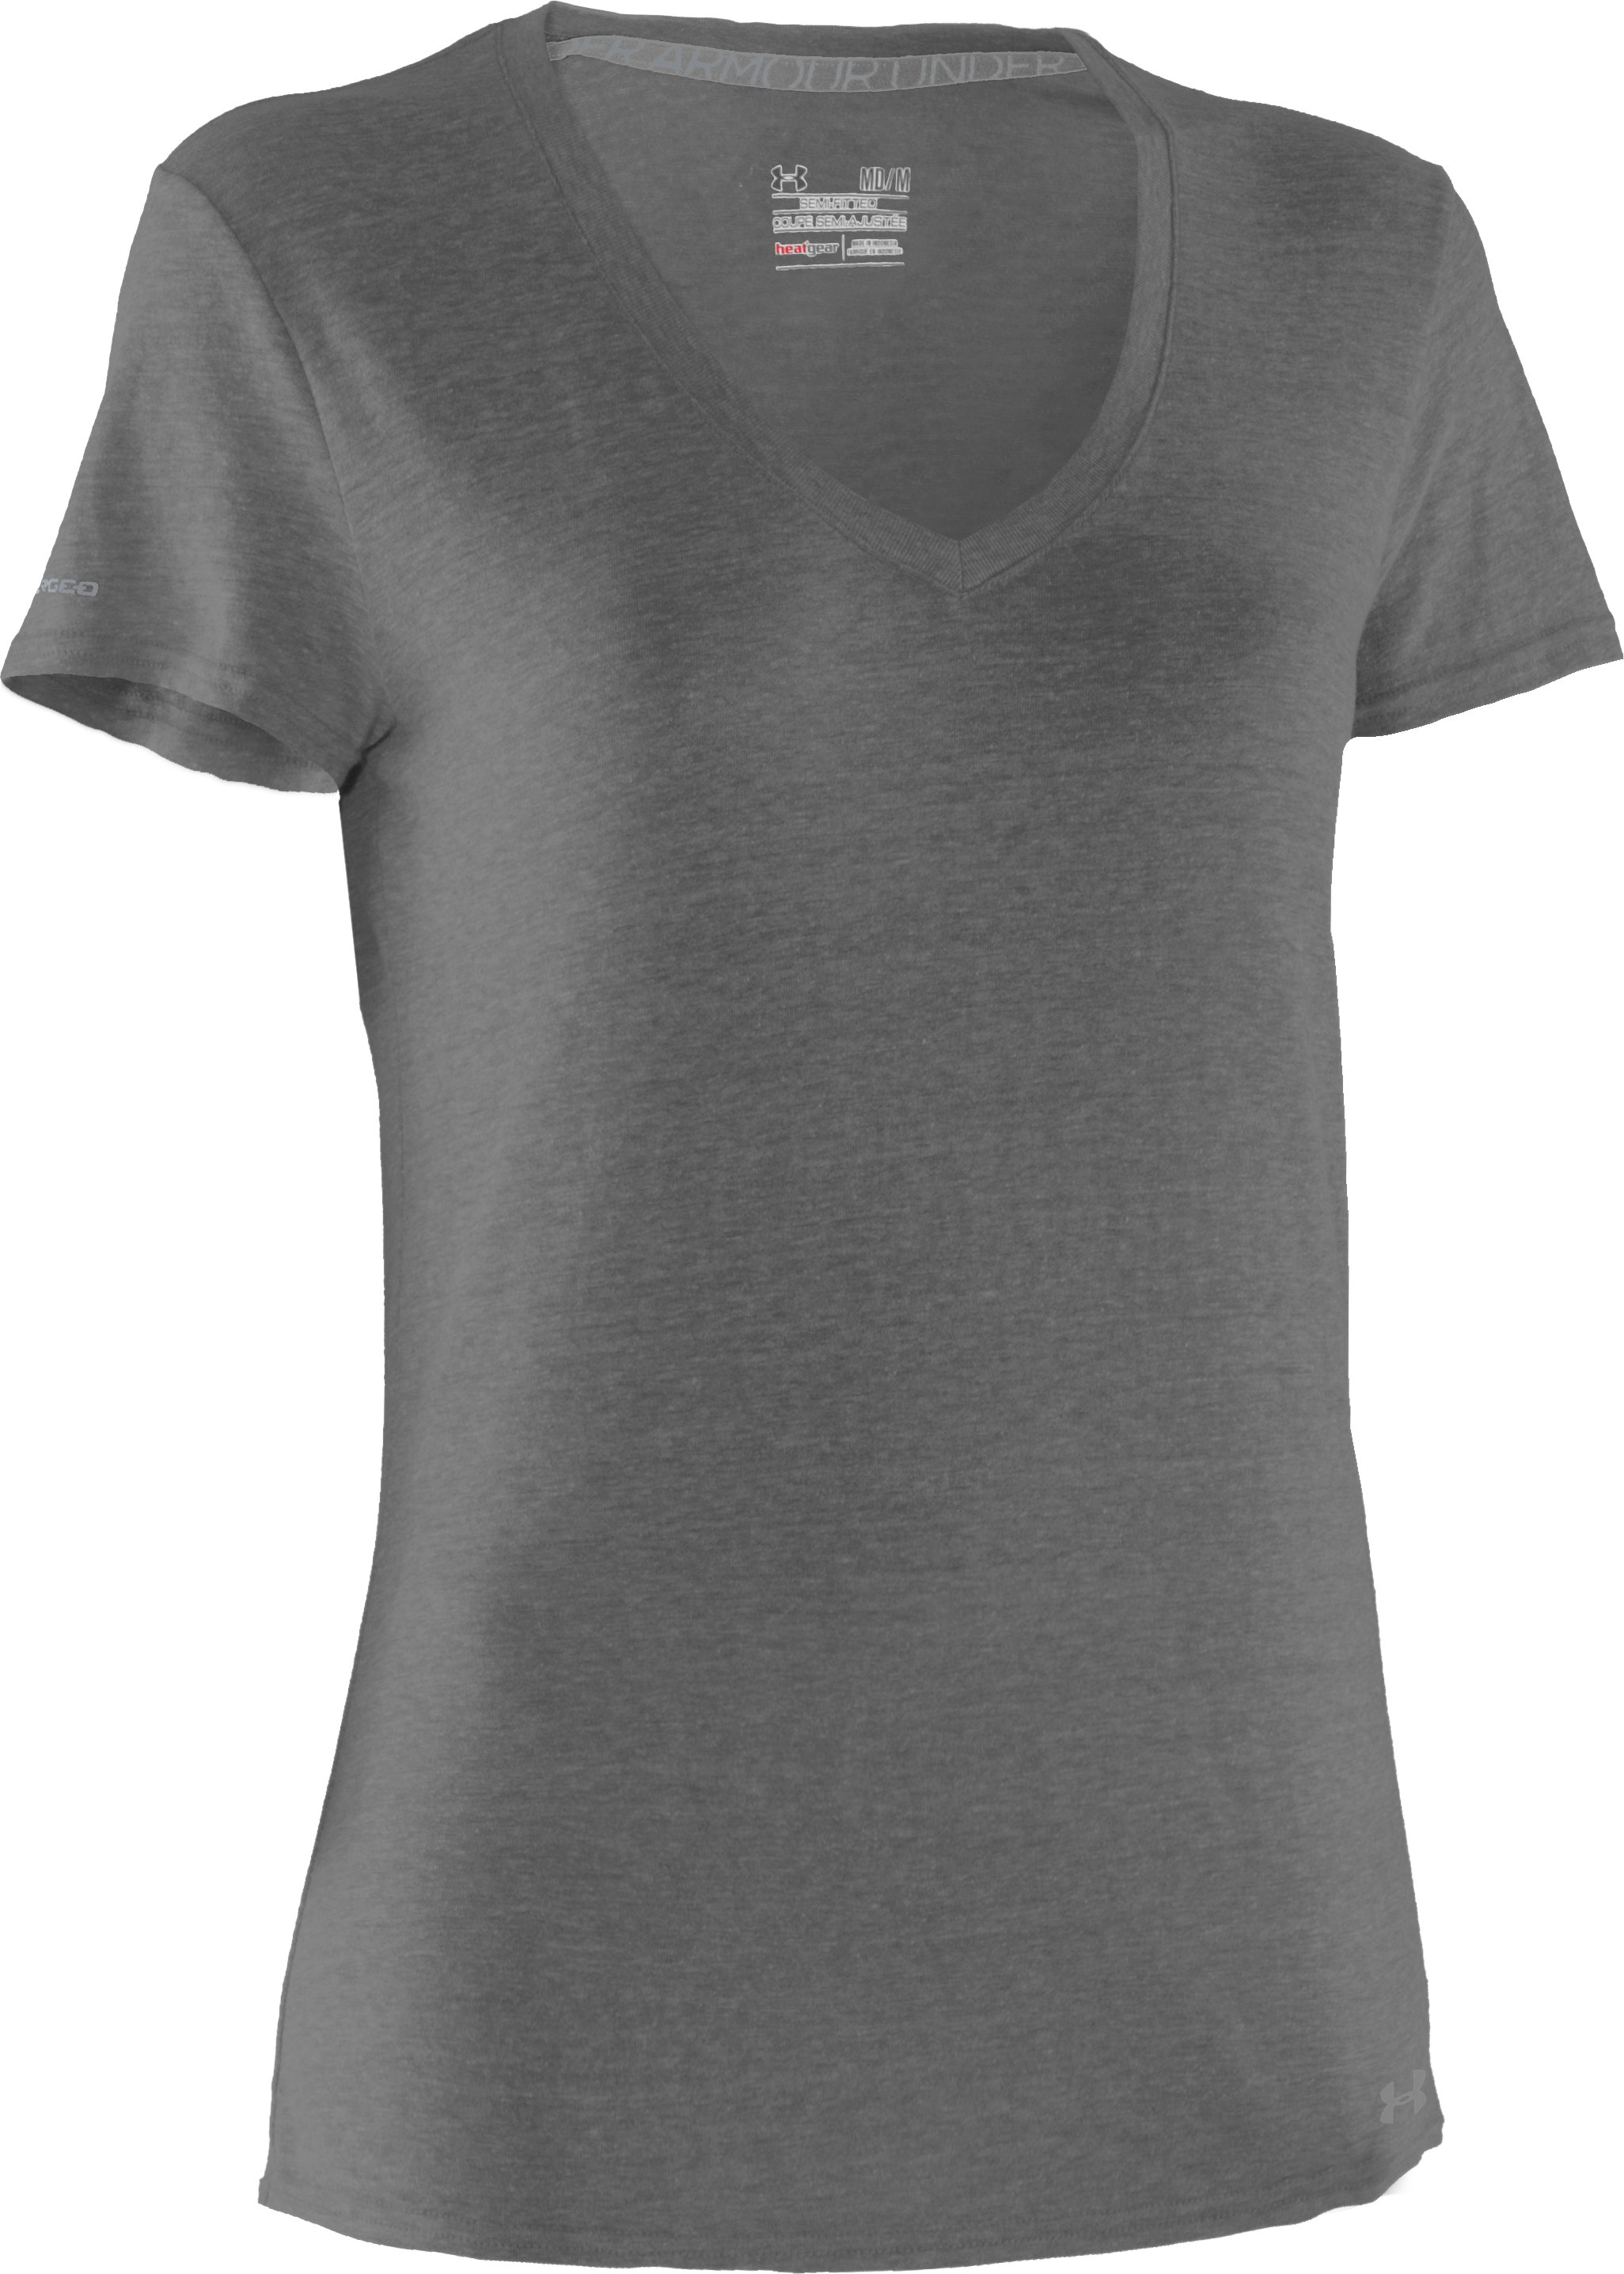 Women's Charged Cotton® Undeniable T-Shirt, Charcoal, undefined